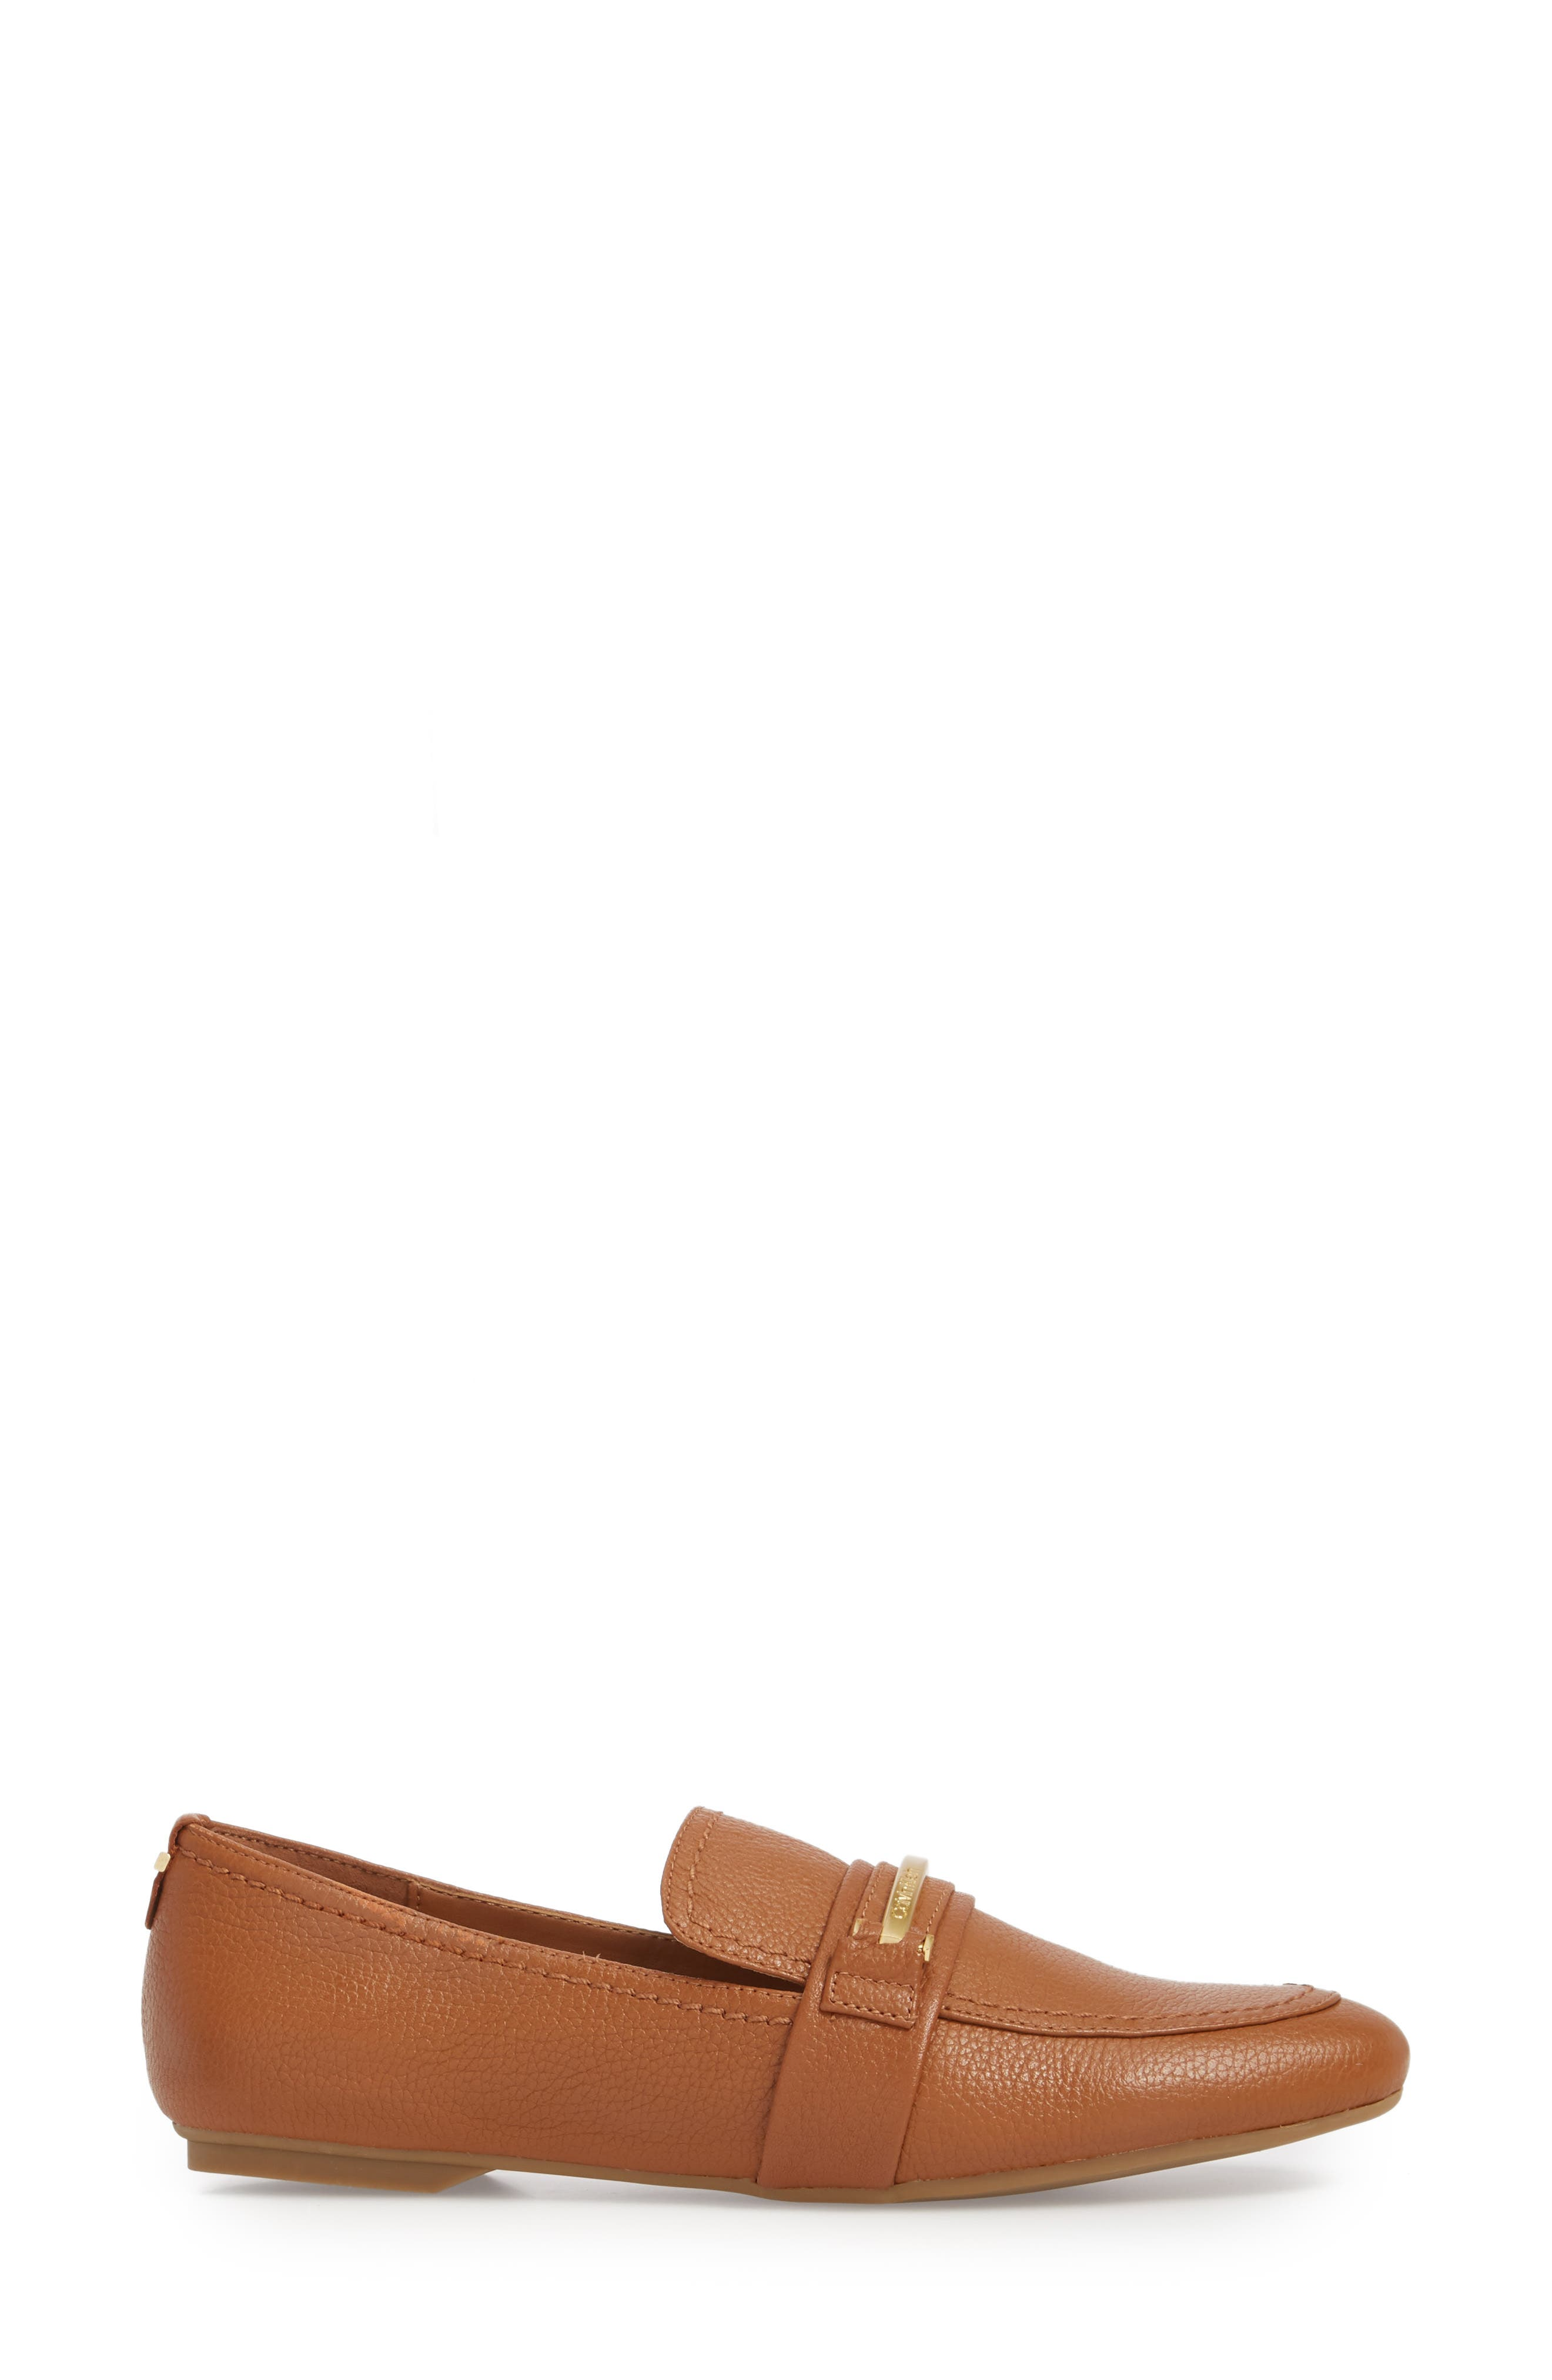 Orianna Loafer,                             Alternate thumbnail 3, color,                             COGNAC LEATHER